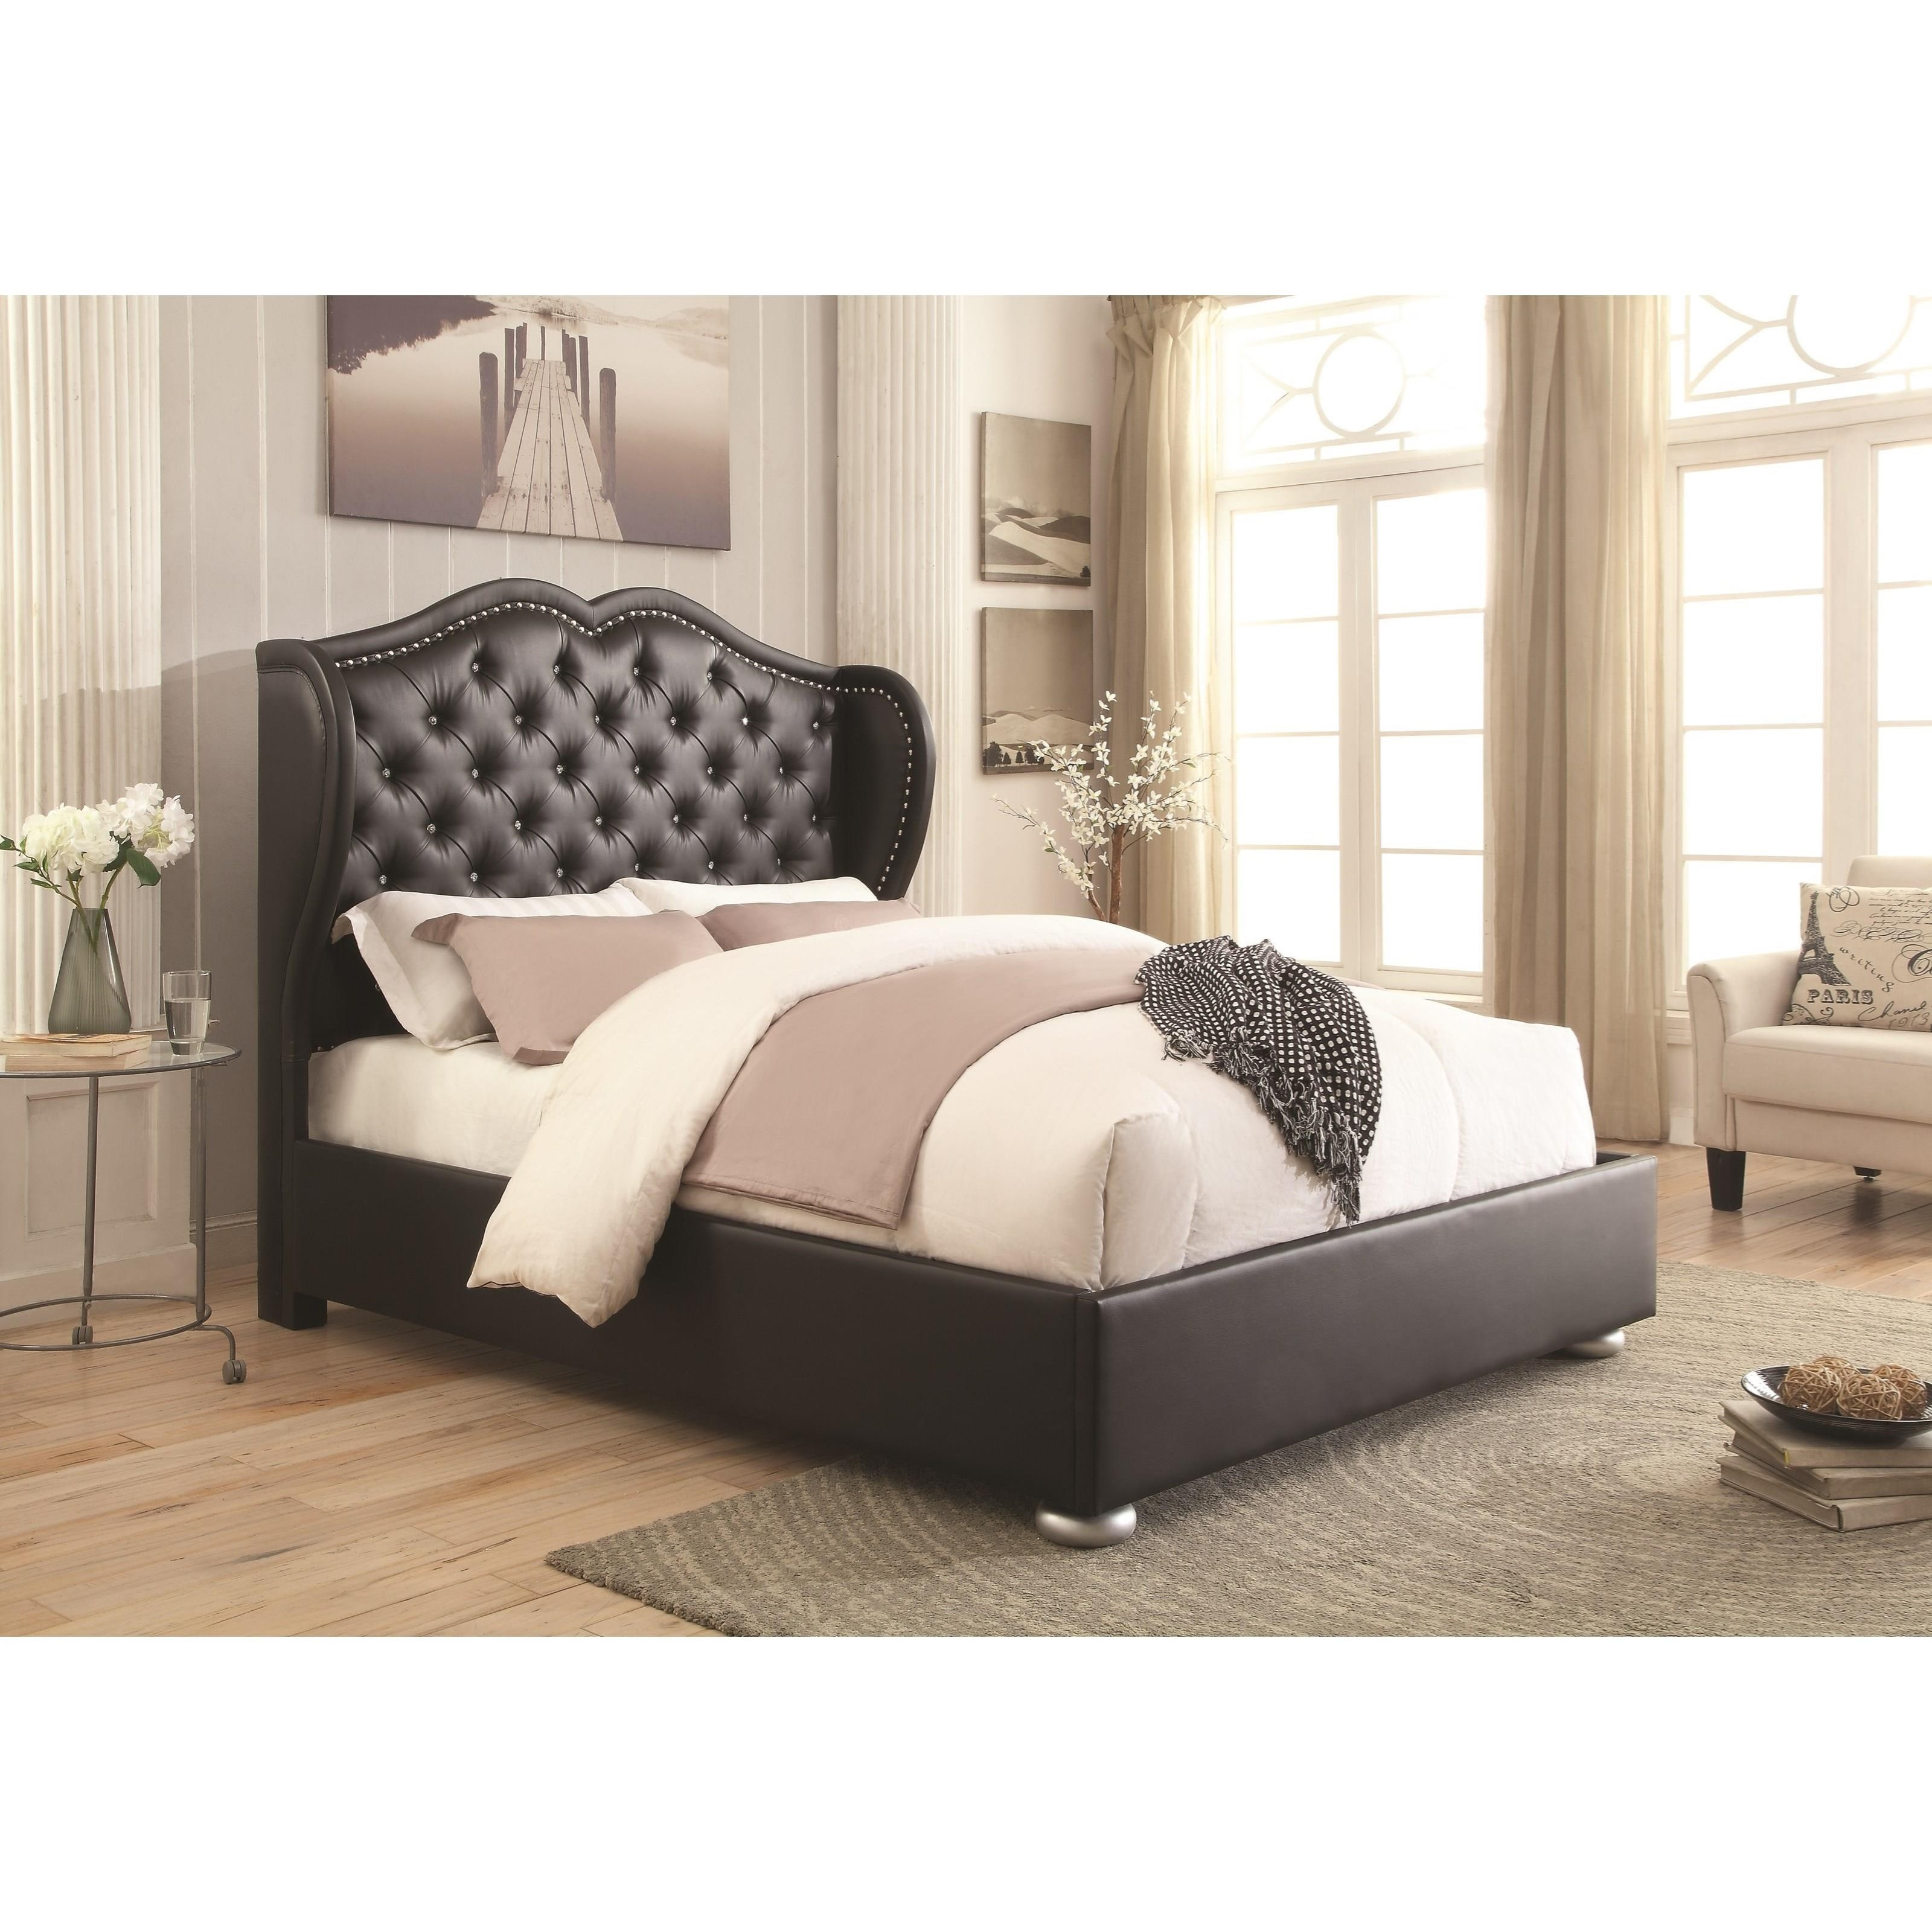 coaster upholstered beds wingback upholsted queen bed  del sol  - coaster upholstered beds queen bed  item number q